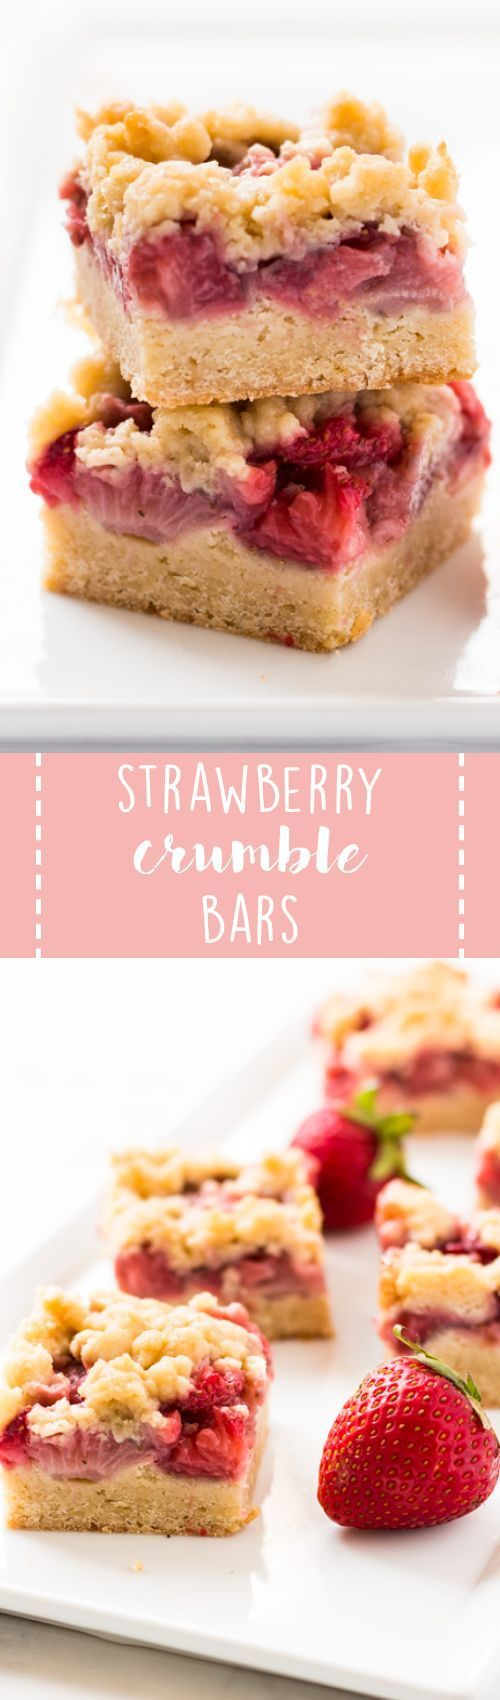 Strawberry crumble bars are sweet, buttery and made with fresh strawberries. This dessert is perfect for spring and summer!